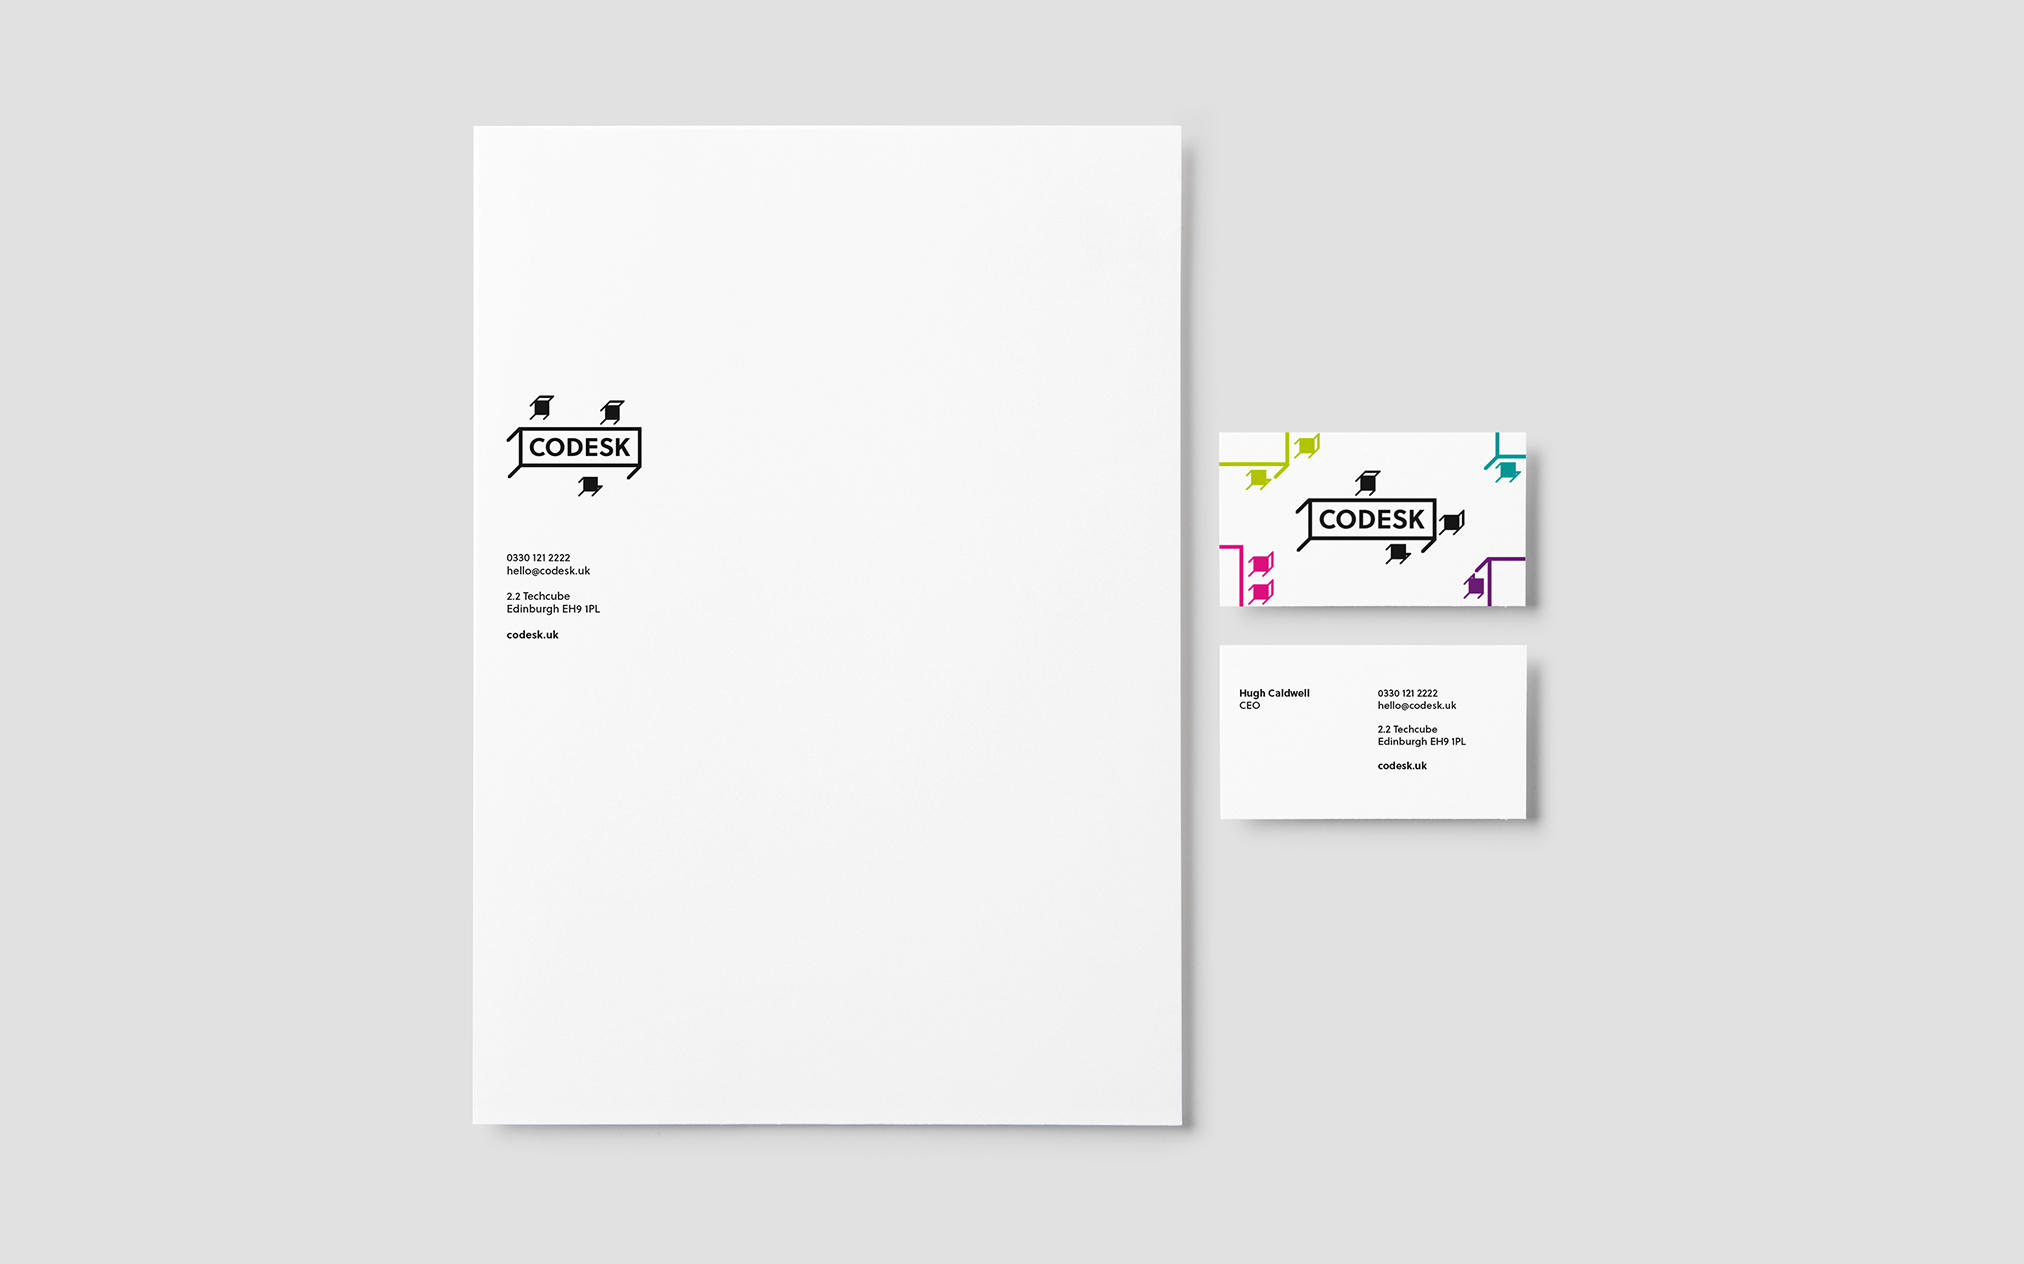 codesk-mockup-stationery